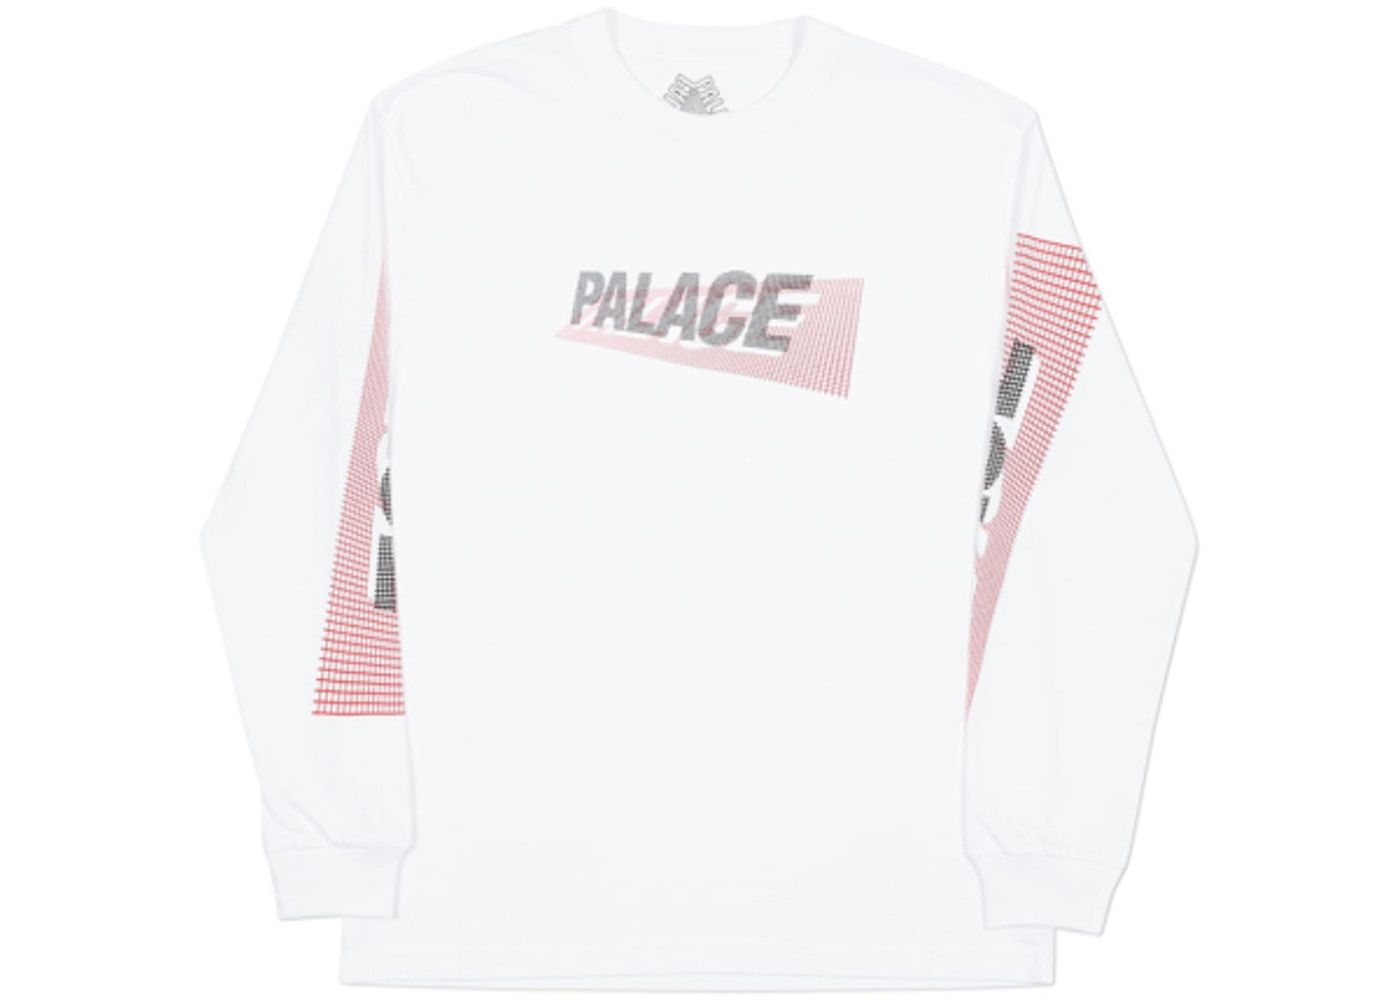 f2a8ab6a Buy and sell authentic Palace streetwear on StockX including the Palace 3-P  Longsleeve White from FW18.